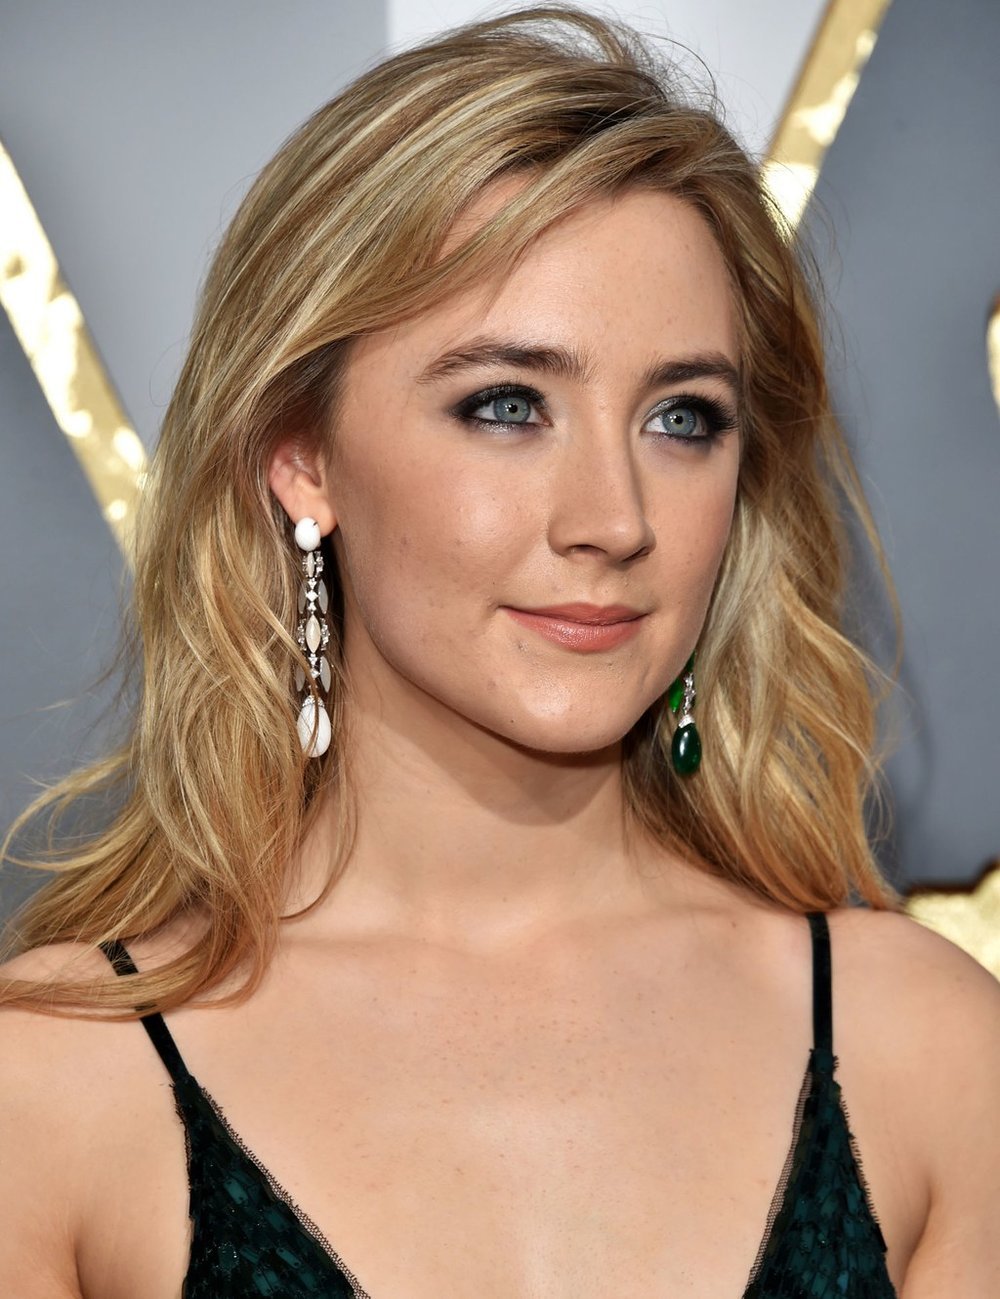 beauty-2016-02-saiorse-ronan-oscars-2016-makeup-main.jpg